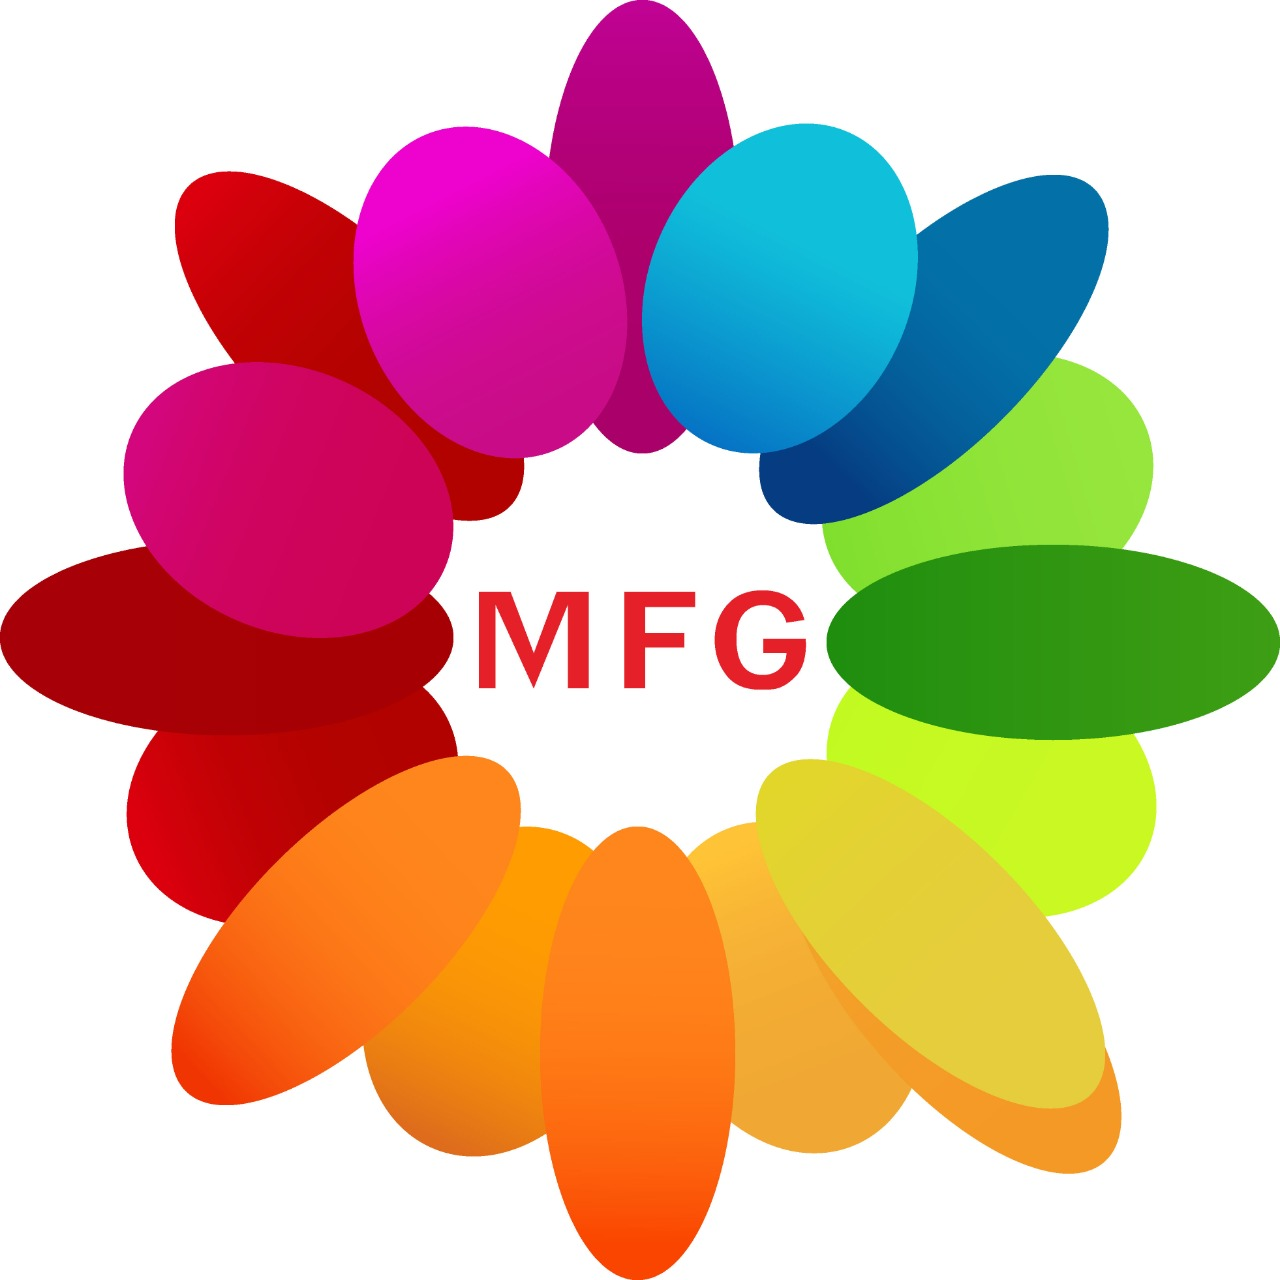 3 Tier Vanilla Cake Of 6 Kg With Beautiful Floral Design Myflowergift